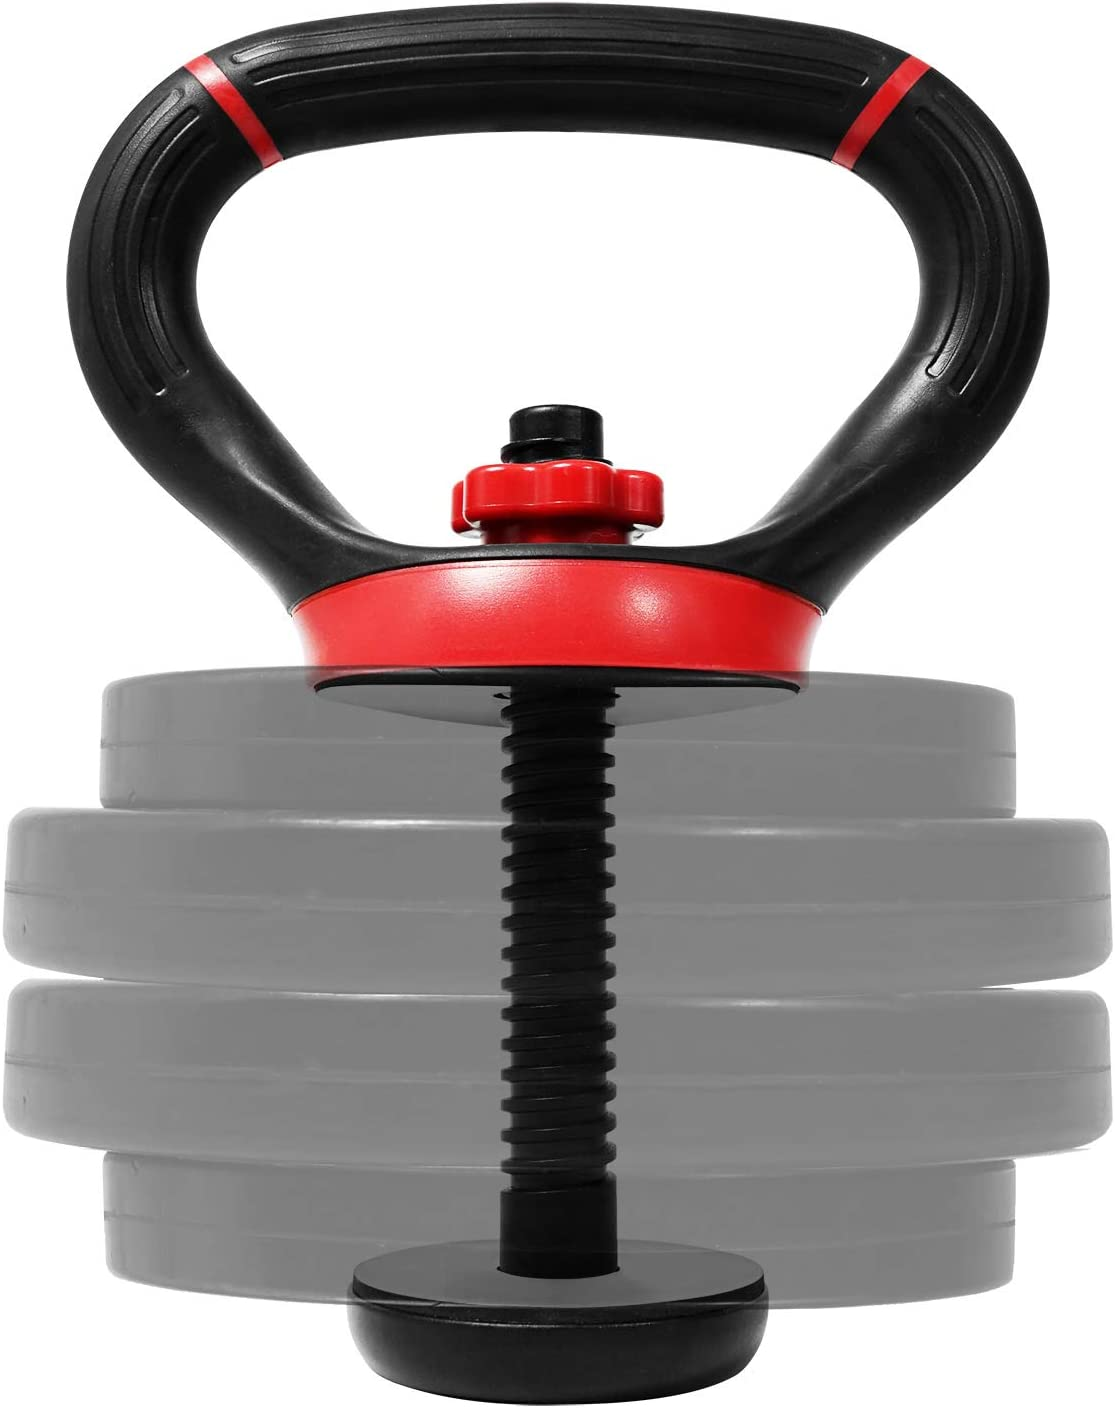 Yes4All Adjustable Kettlebell Grip for Dumbbell and Handle for Plates